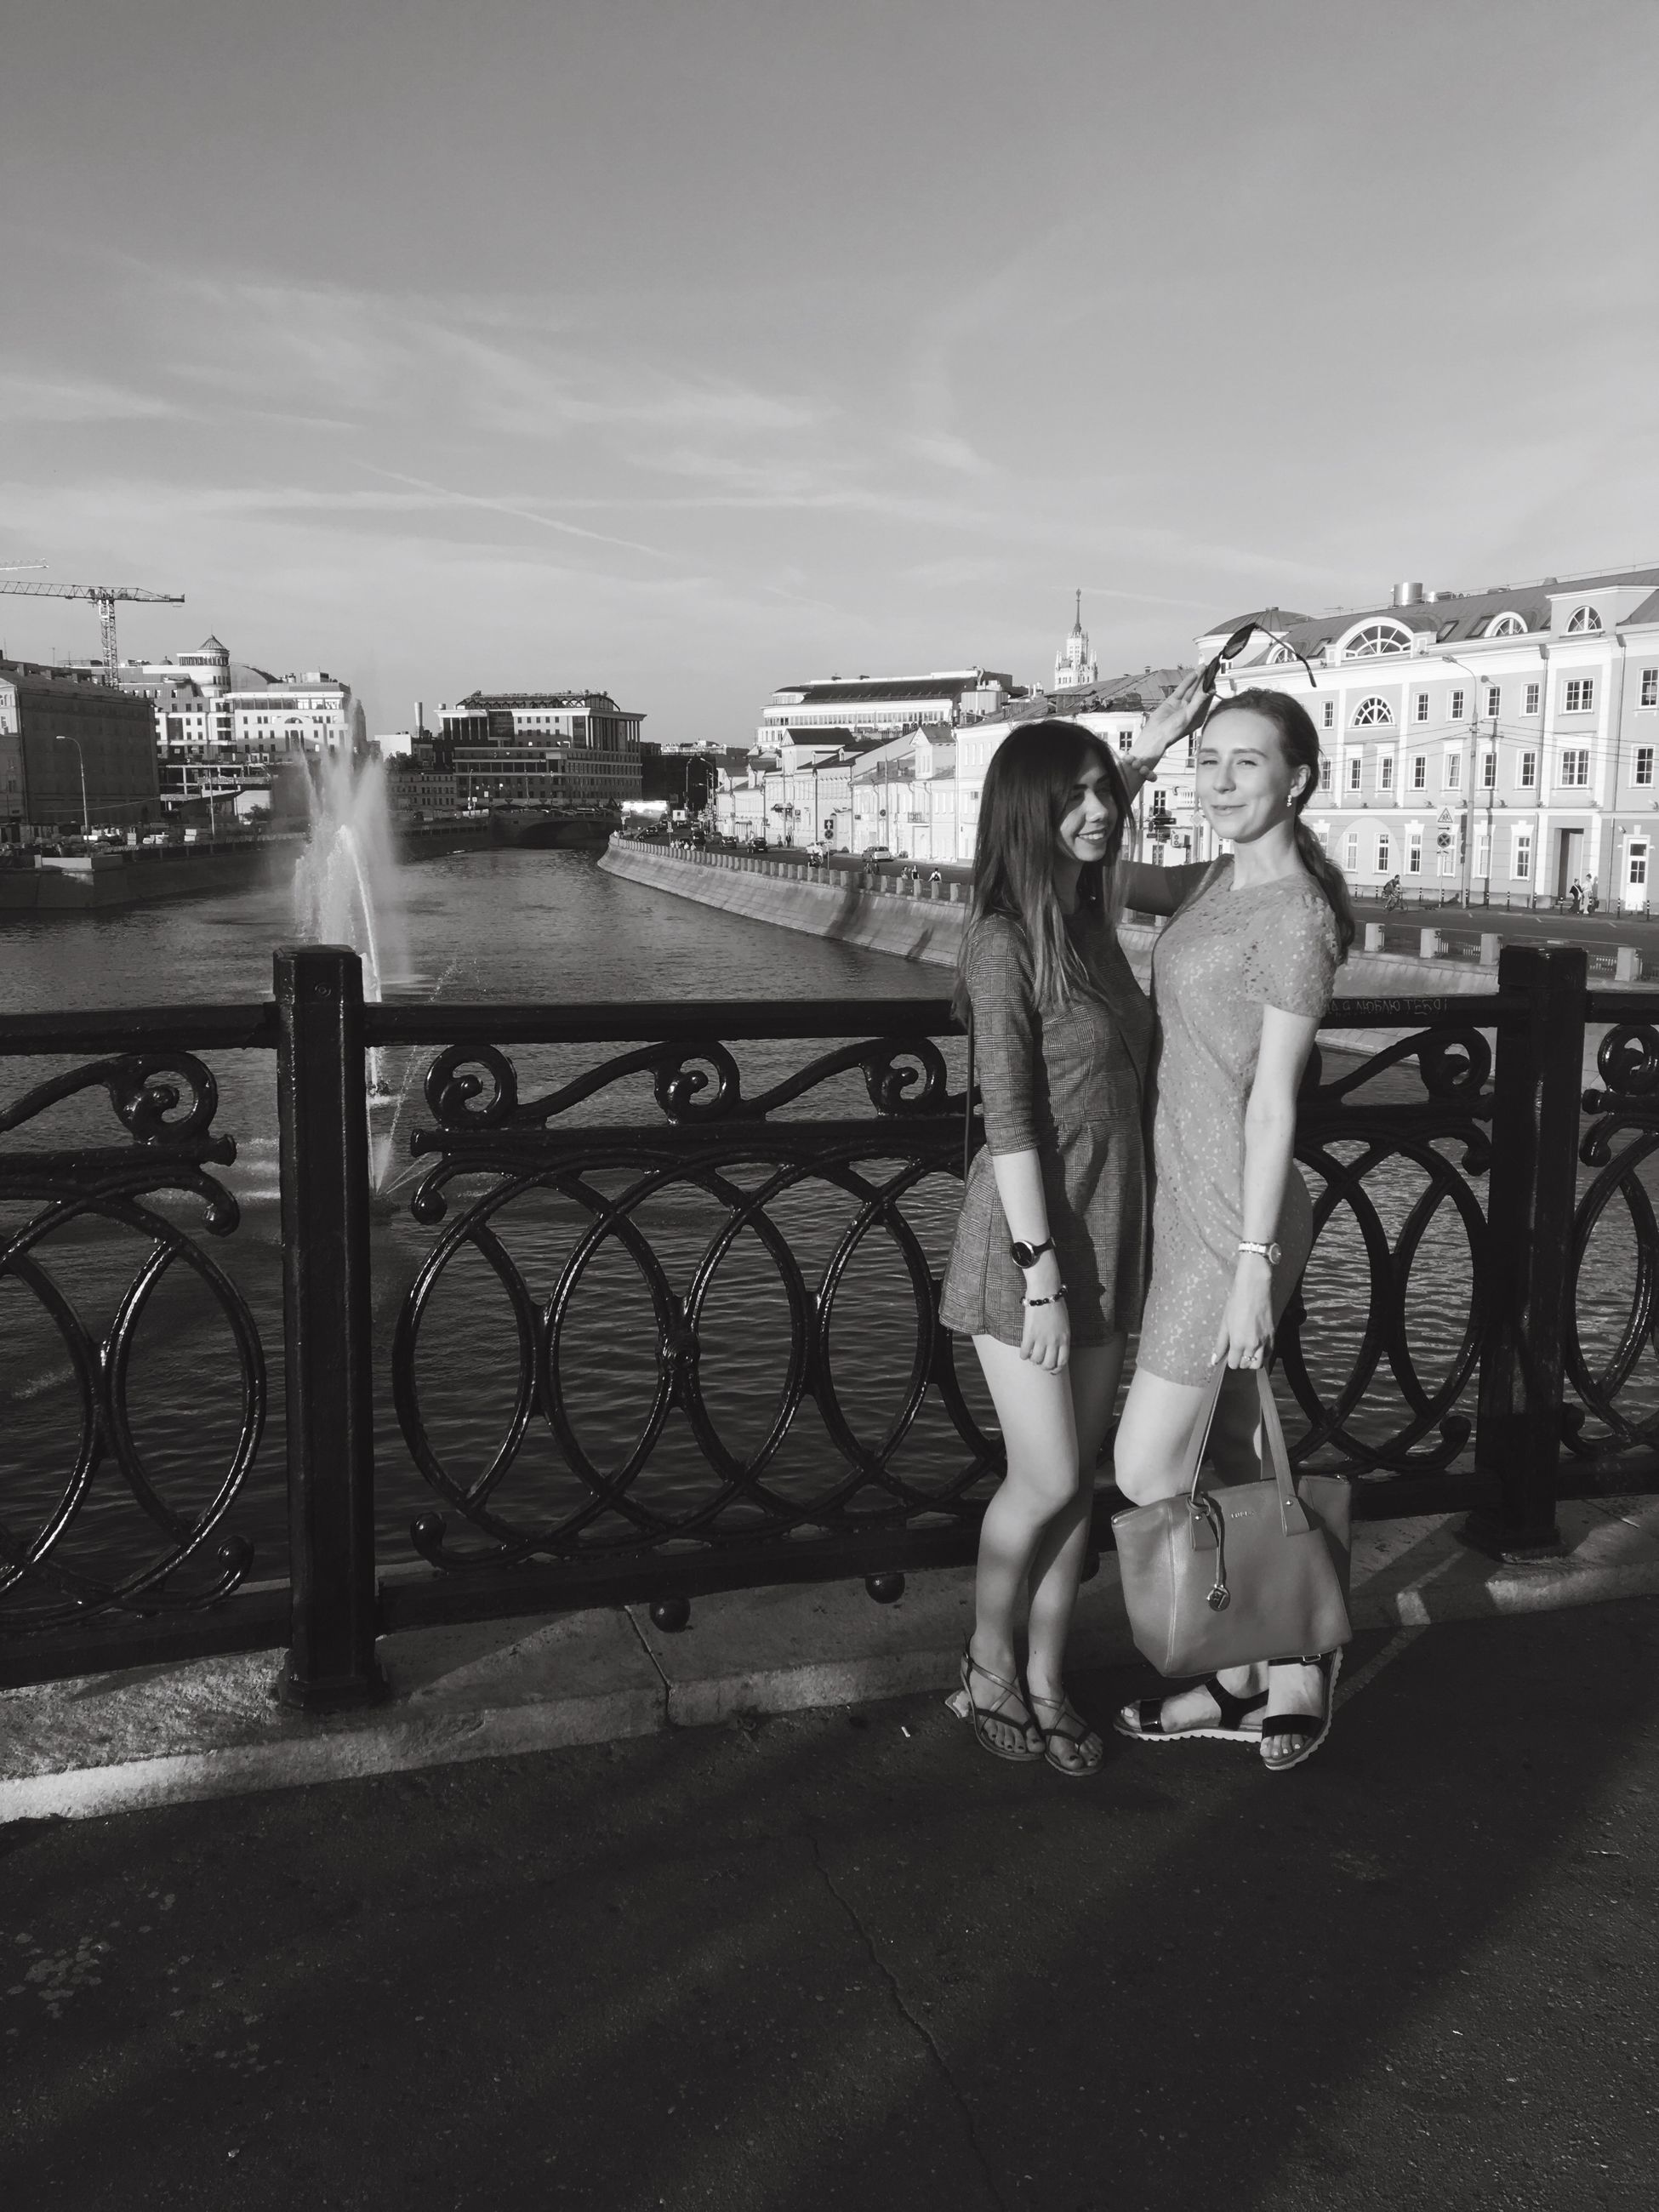 full length, built structure, two people, building exterior, real people, outdoors, young women, architecture, sky, day, city, togetherness, young adult, love, leisure activity, happiness, bridge - man made structure, smiling, retaining wall, lifestyles, bonding, women, friendship, cityscape